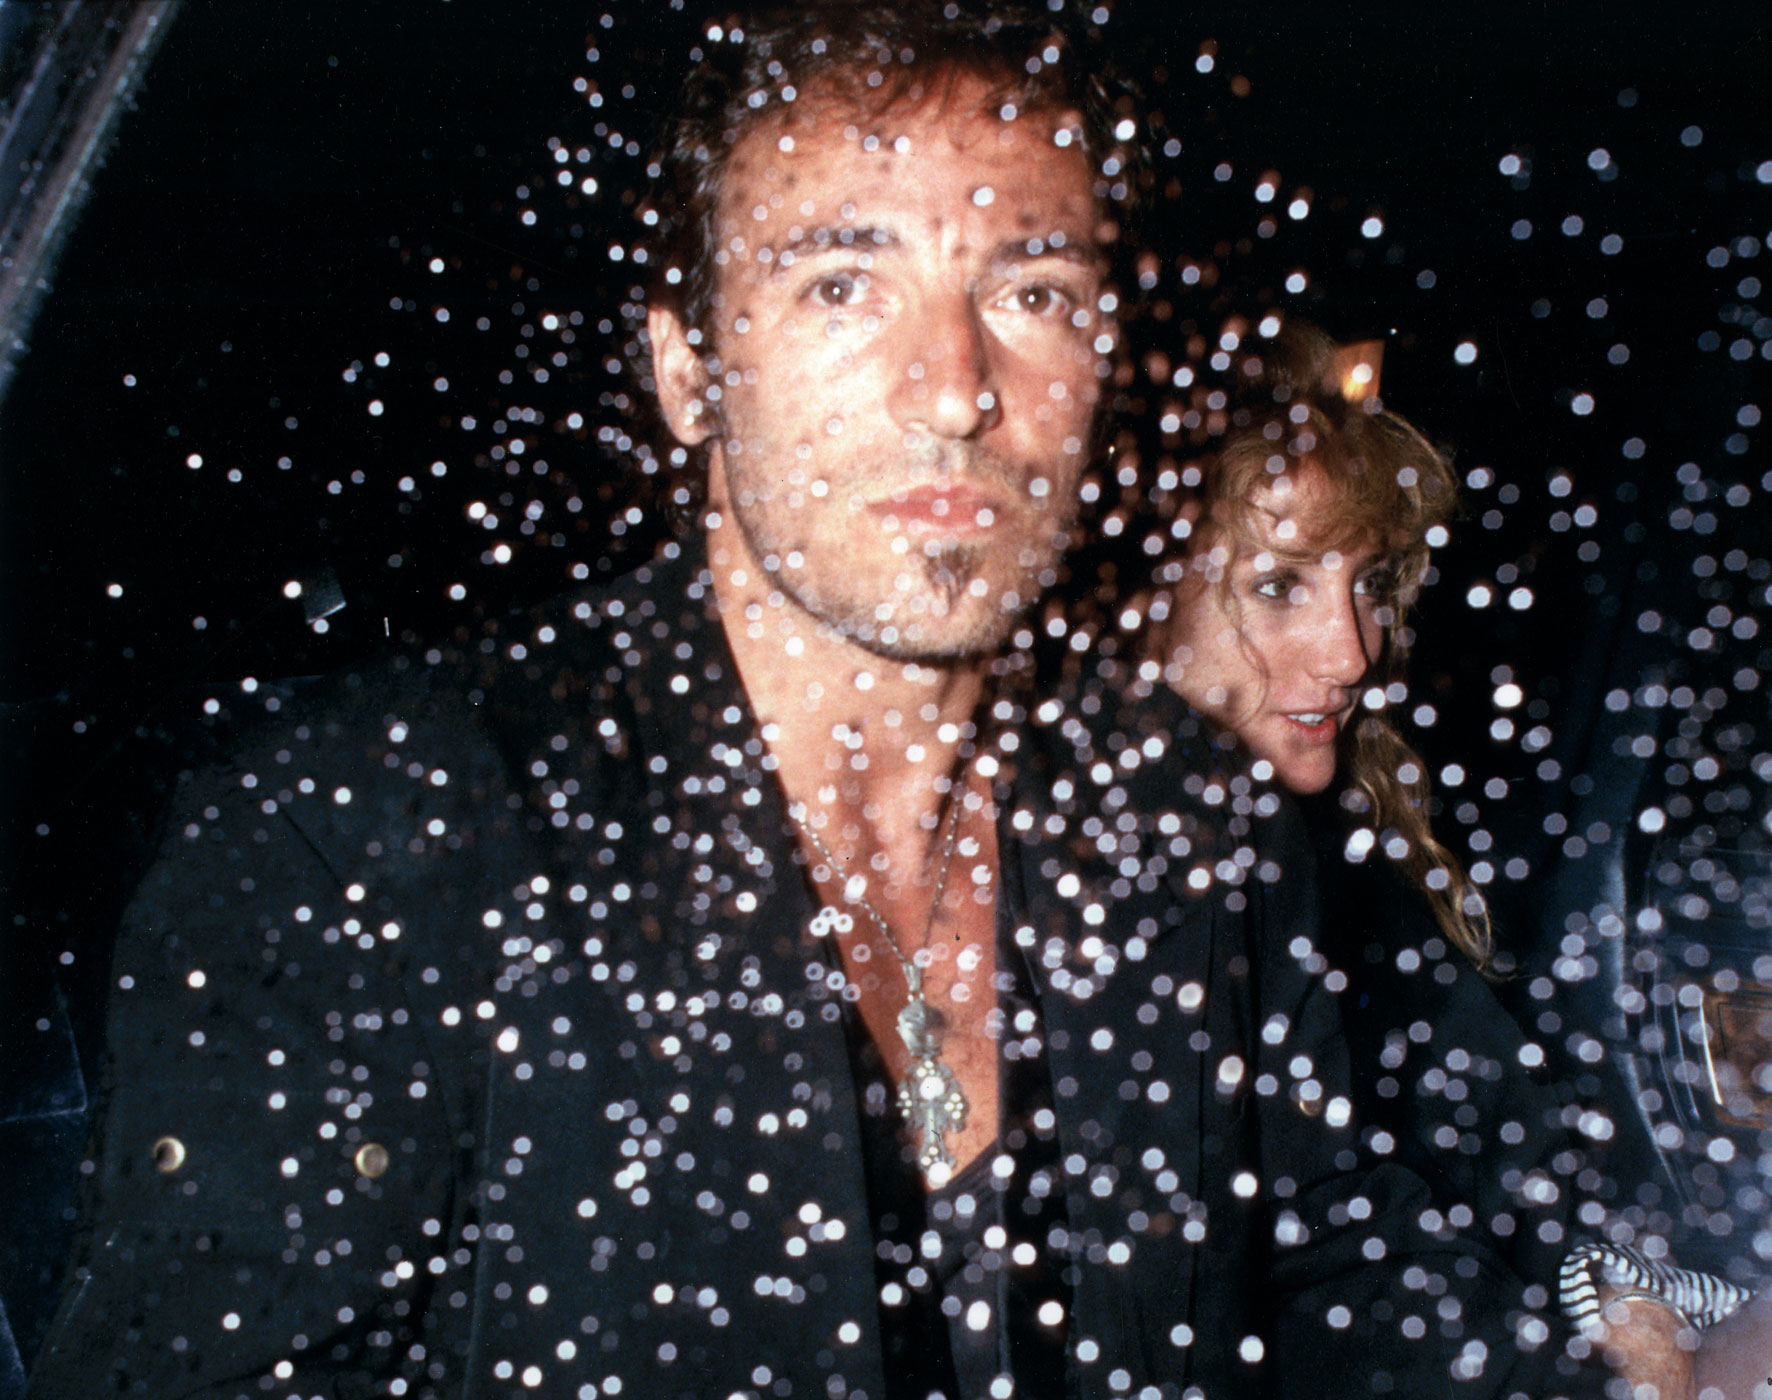 1988:                                Springsteen sprang from the music magazines to the tabloids when he divorced actress Julianne Phillips to marry his back-up singer, Patti Scialfa. The couple married in 1991 and have three children.